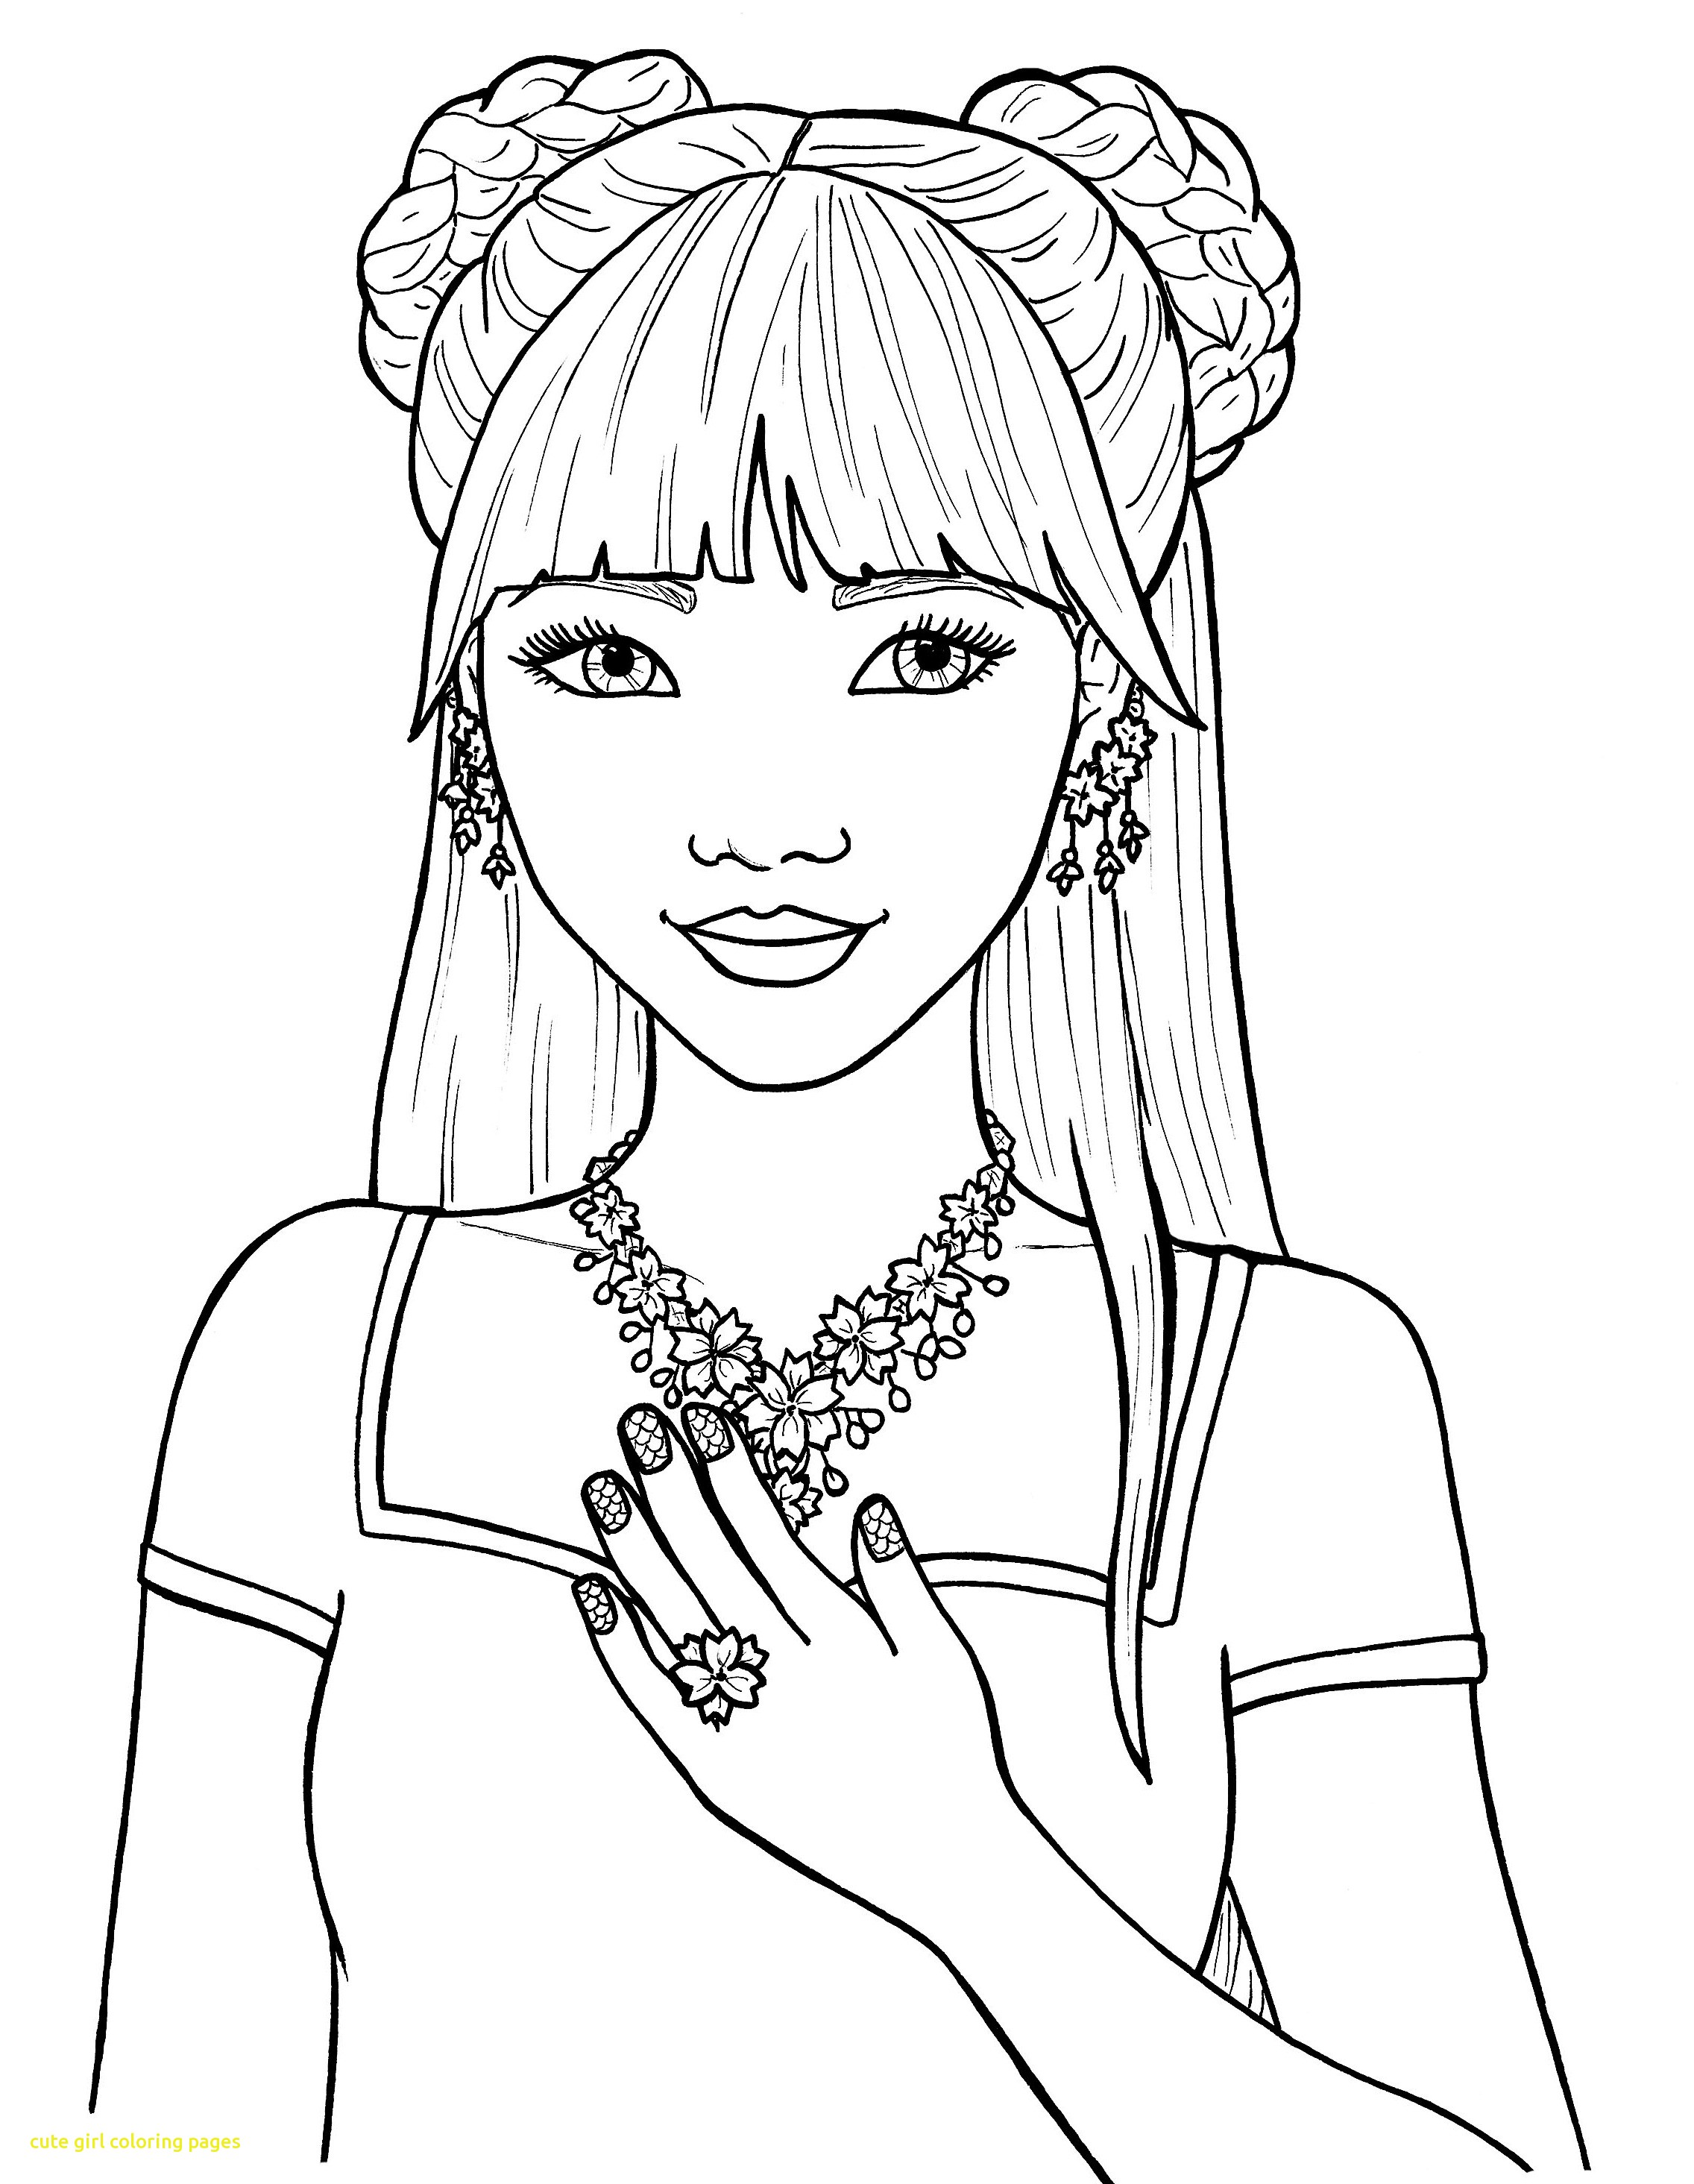 coloring pages girls the best free coloring pages for girls girls pages coloring